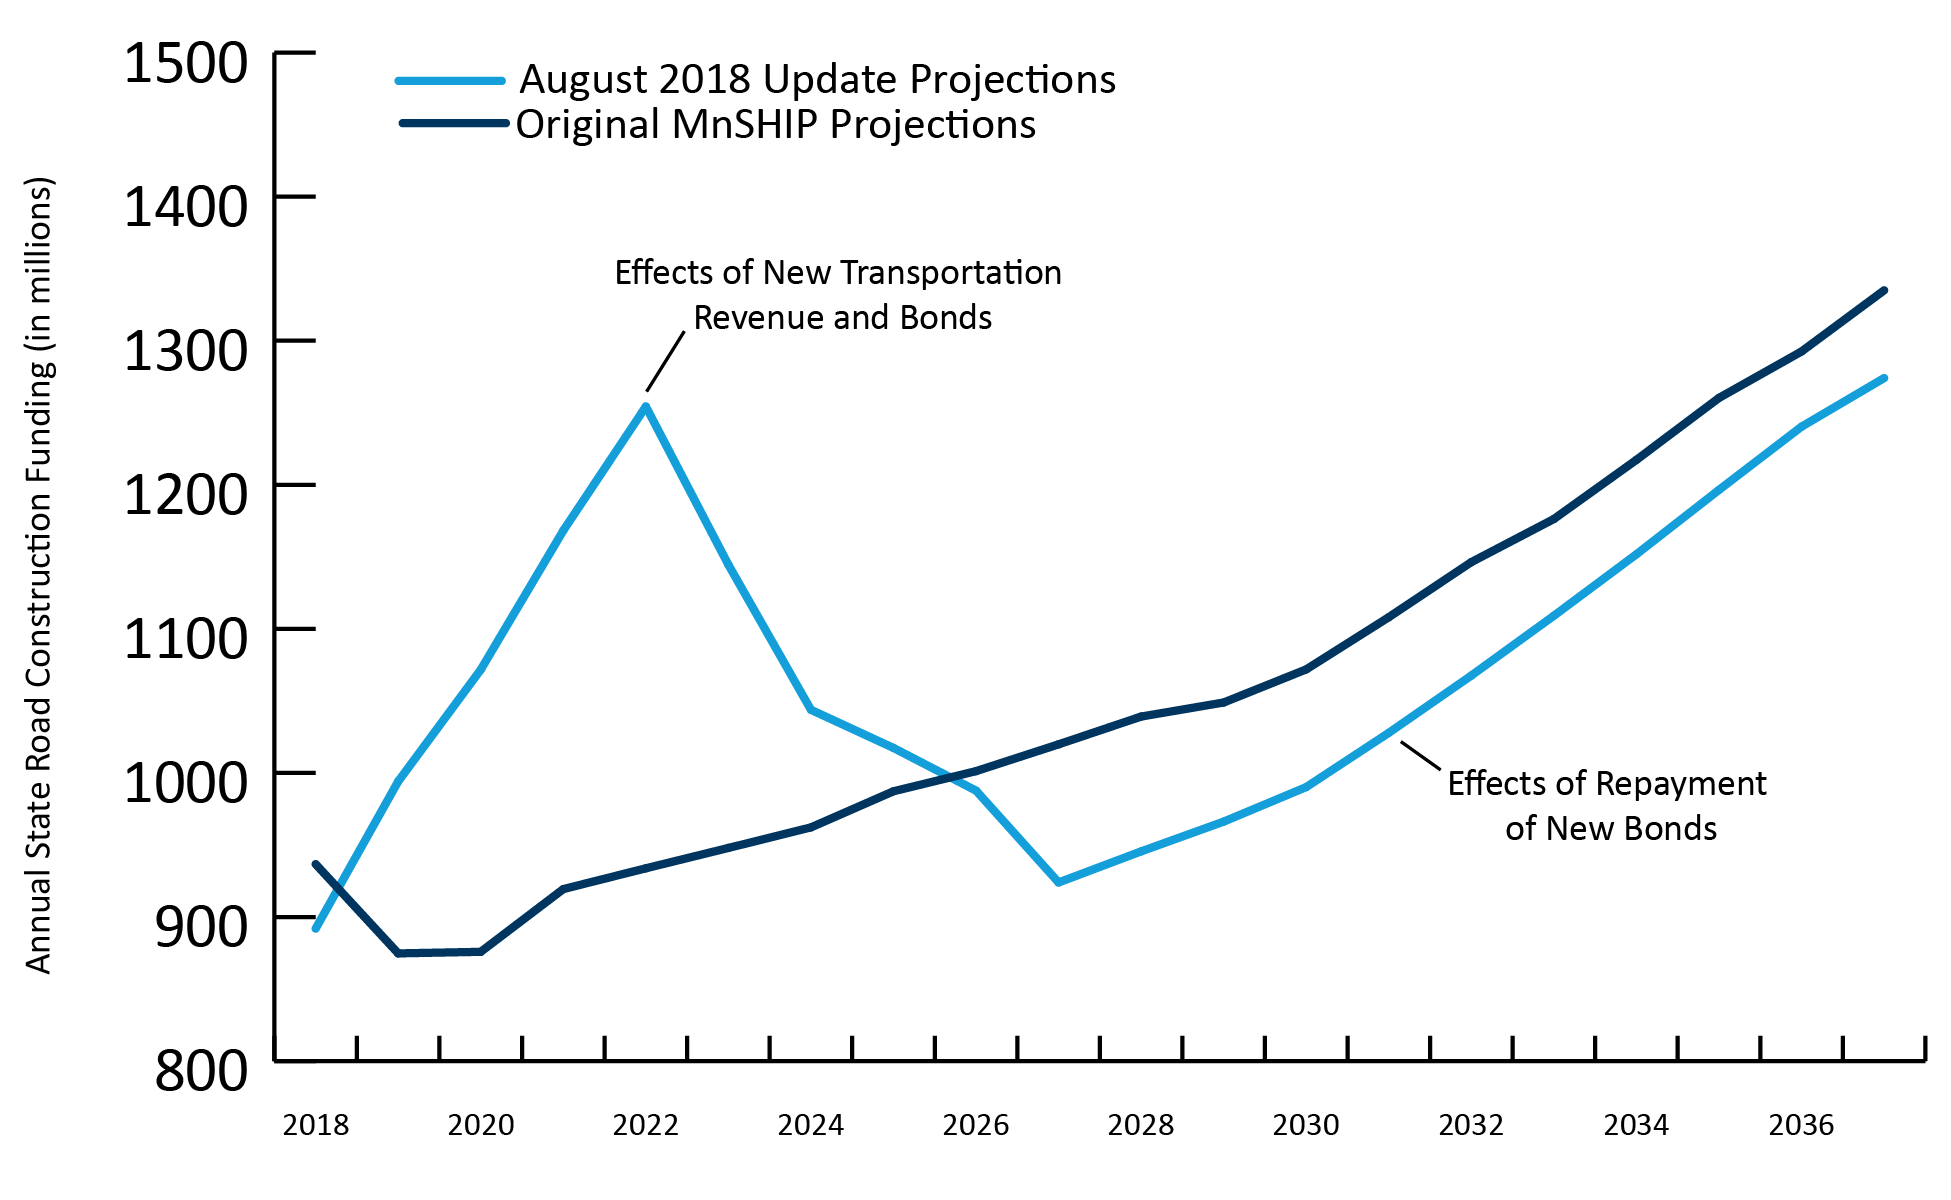 Comparison of Original Funding Projections and August 2018 Updated Projections, showing a spike in August 2018 Update projections in 2022 due to the effects of new transportation revenue and bods, and an upward trend starting in 2028 due to the effects of